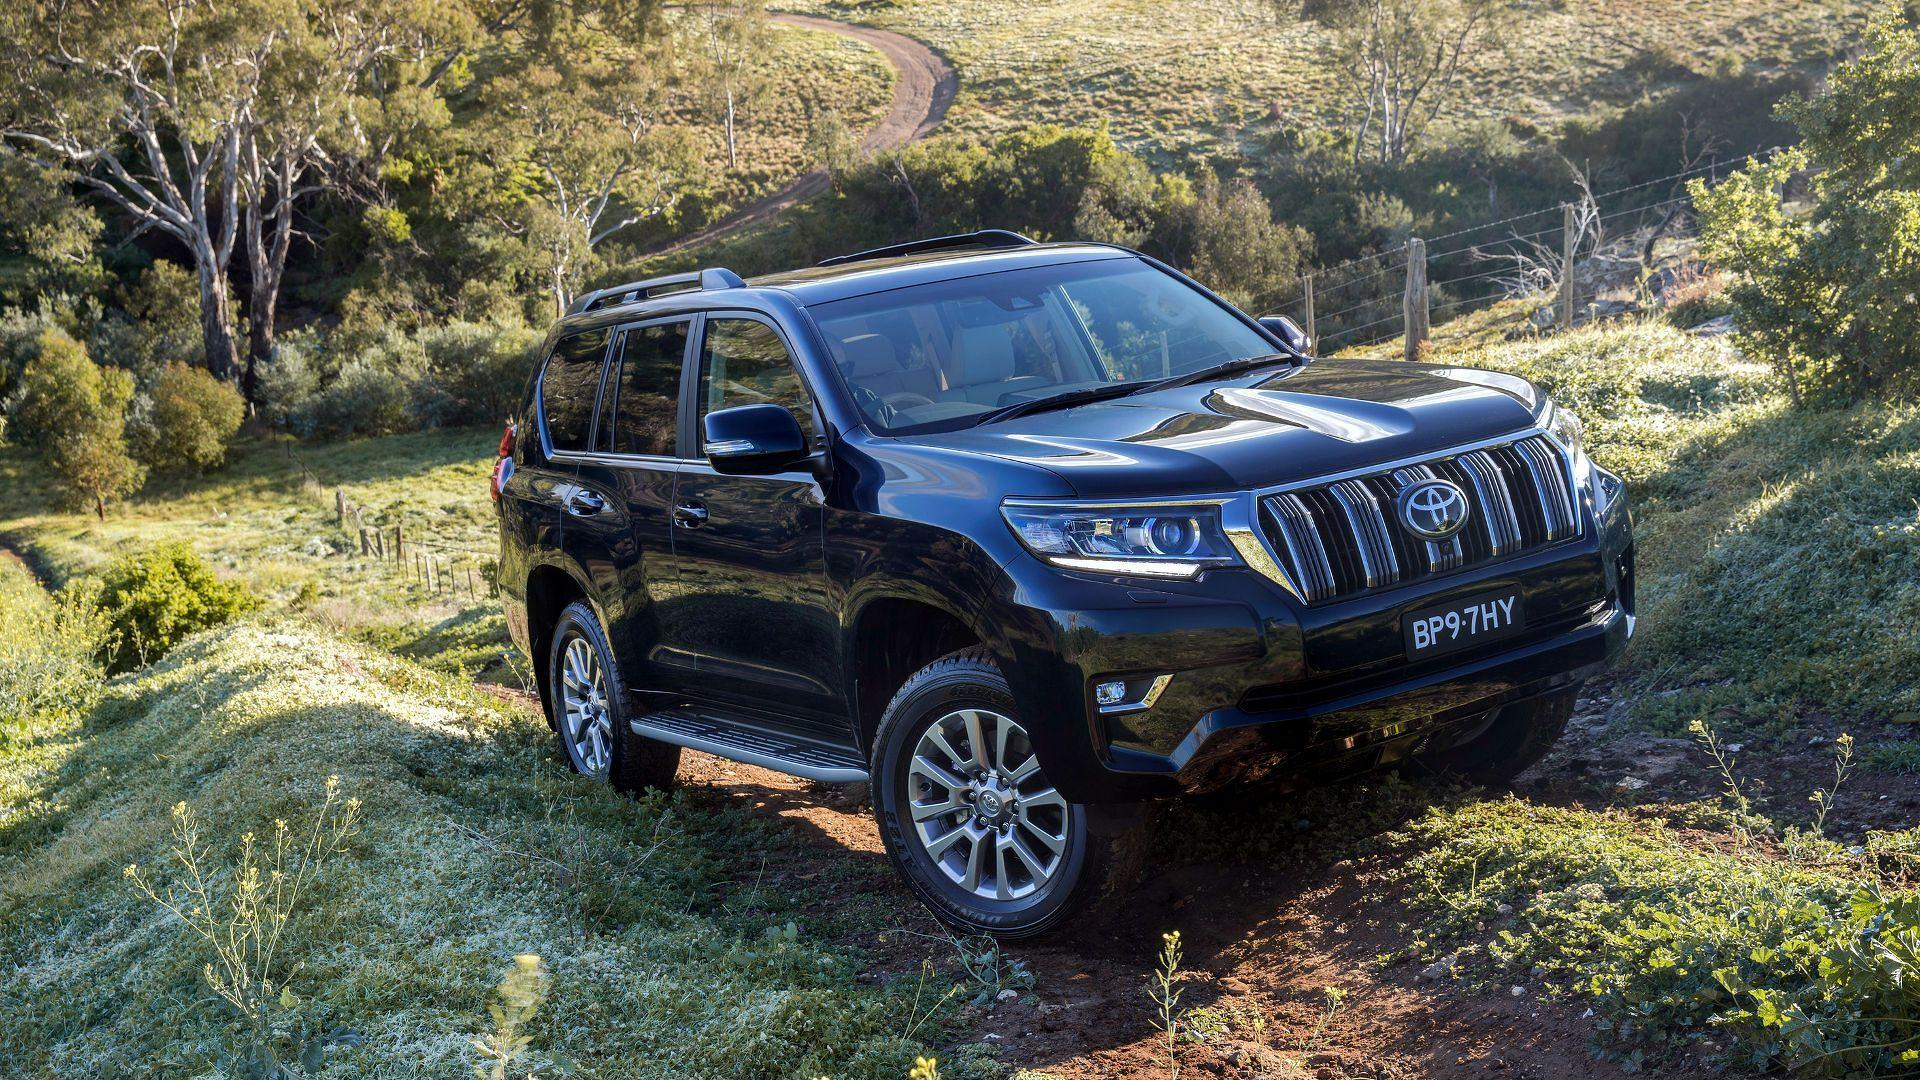 2018-toyota-land-cruiser-australia-official-image (3)